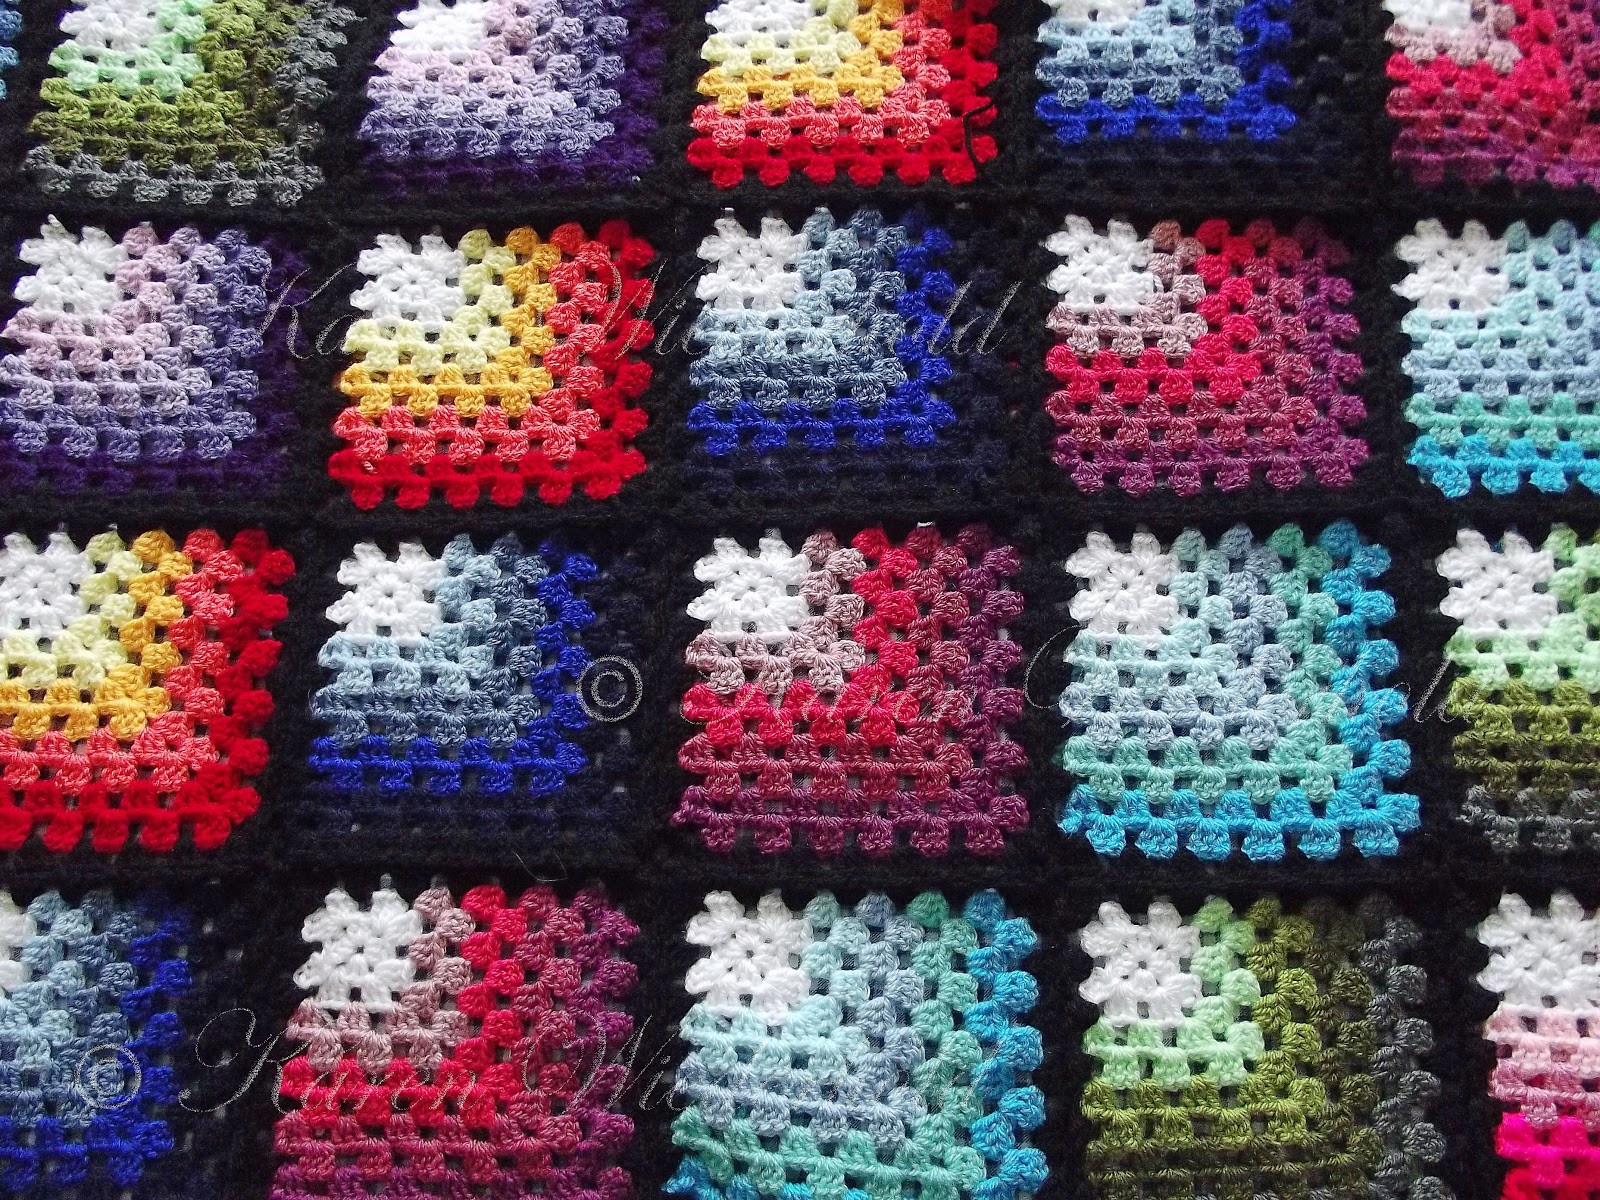 Crochet Square Patterns Inspirational Karen Wiederhold Mitred Granny Square Blanket Free Of Marvelous 43 Photos Crochet Square Patterns